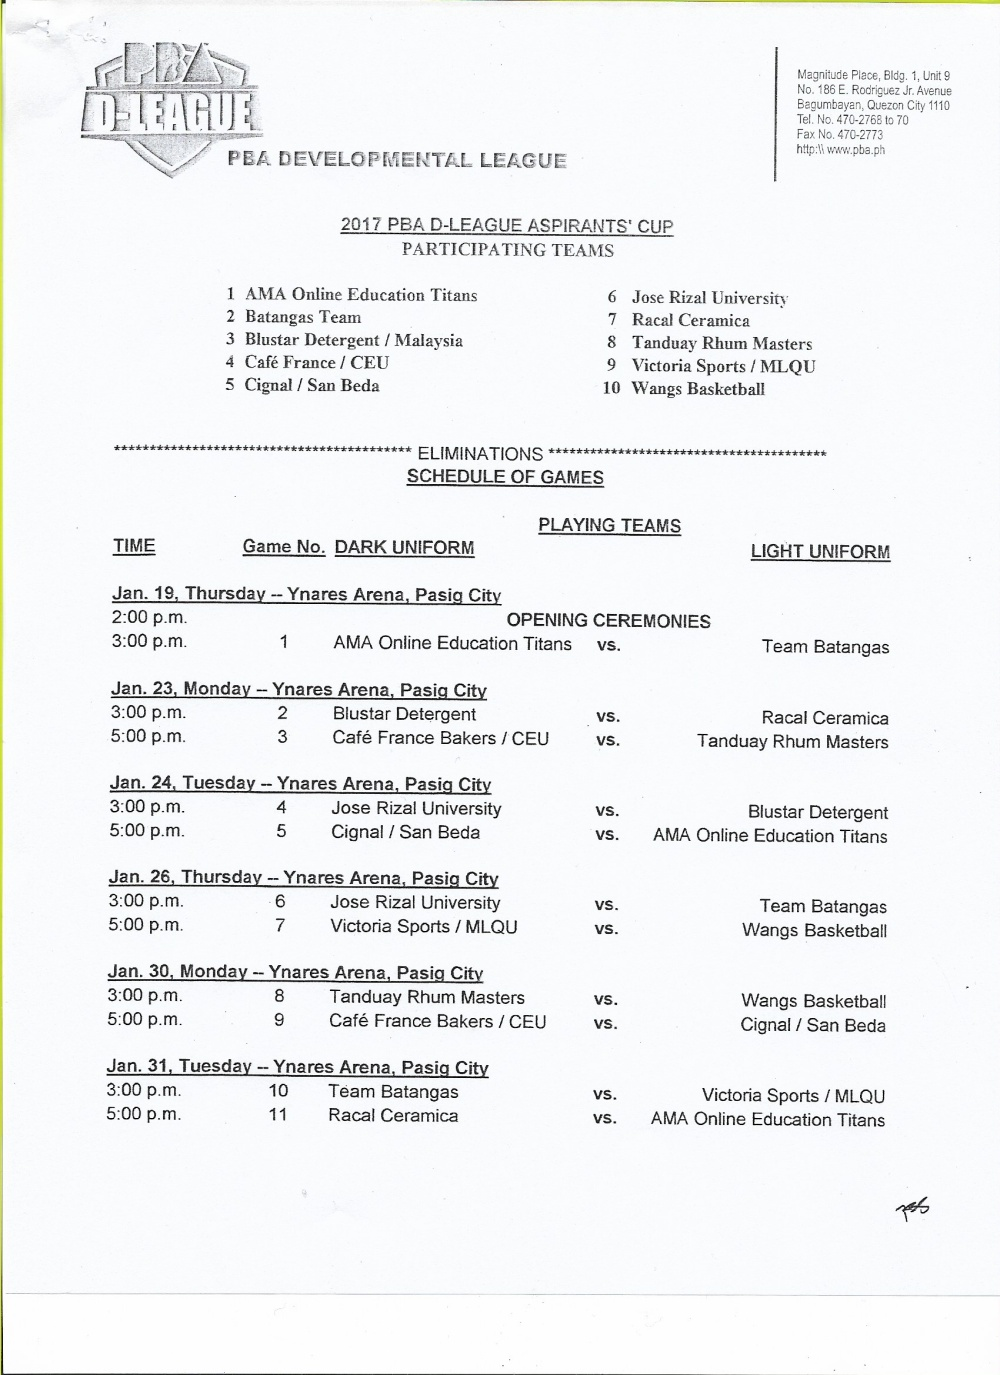 pba-dleague-aspirants-cup-elims-sked-p1